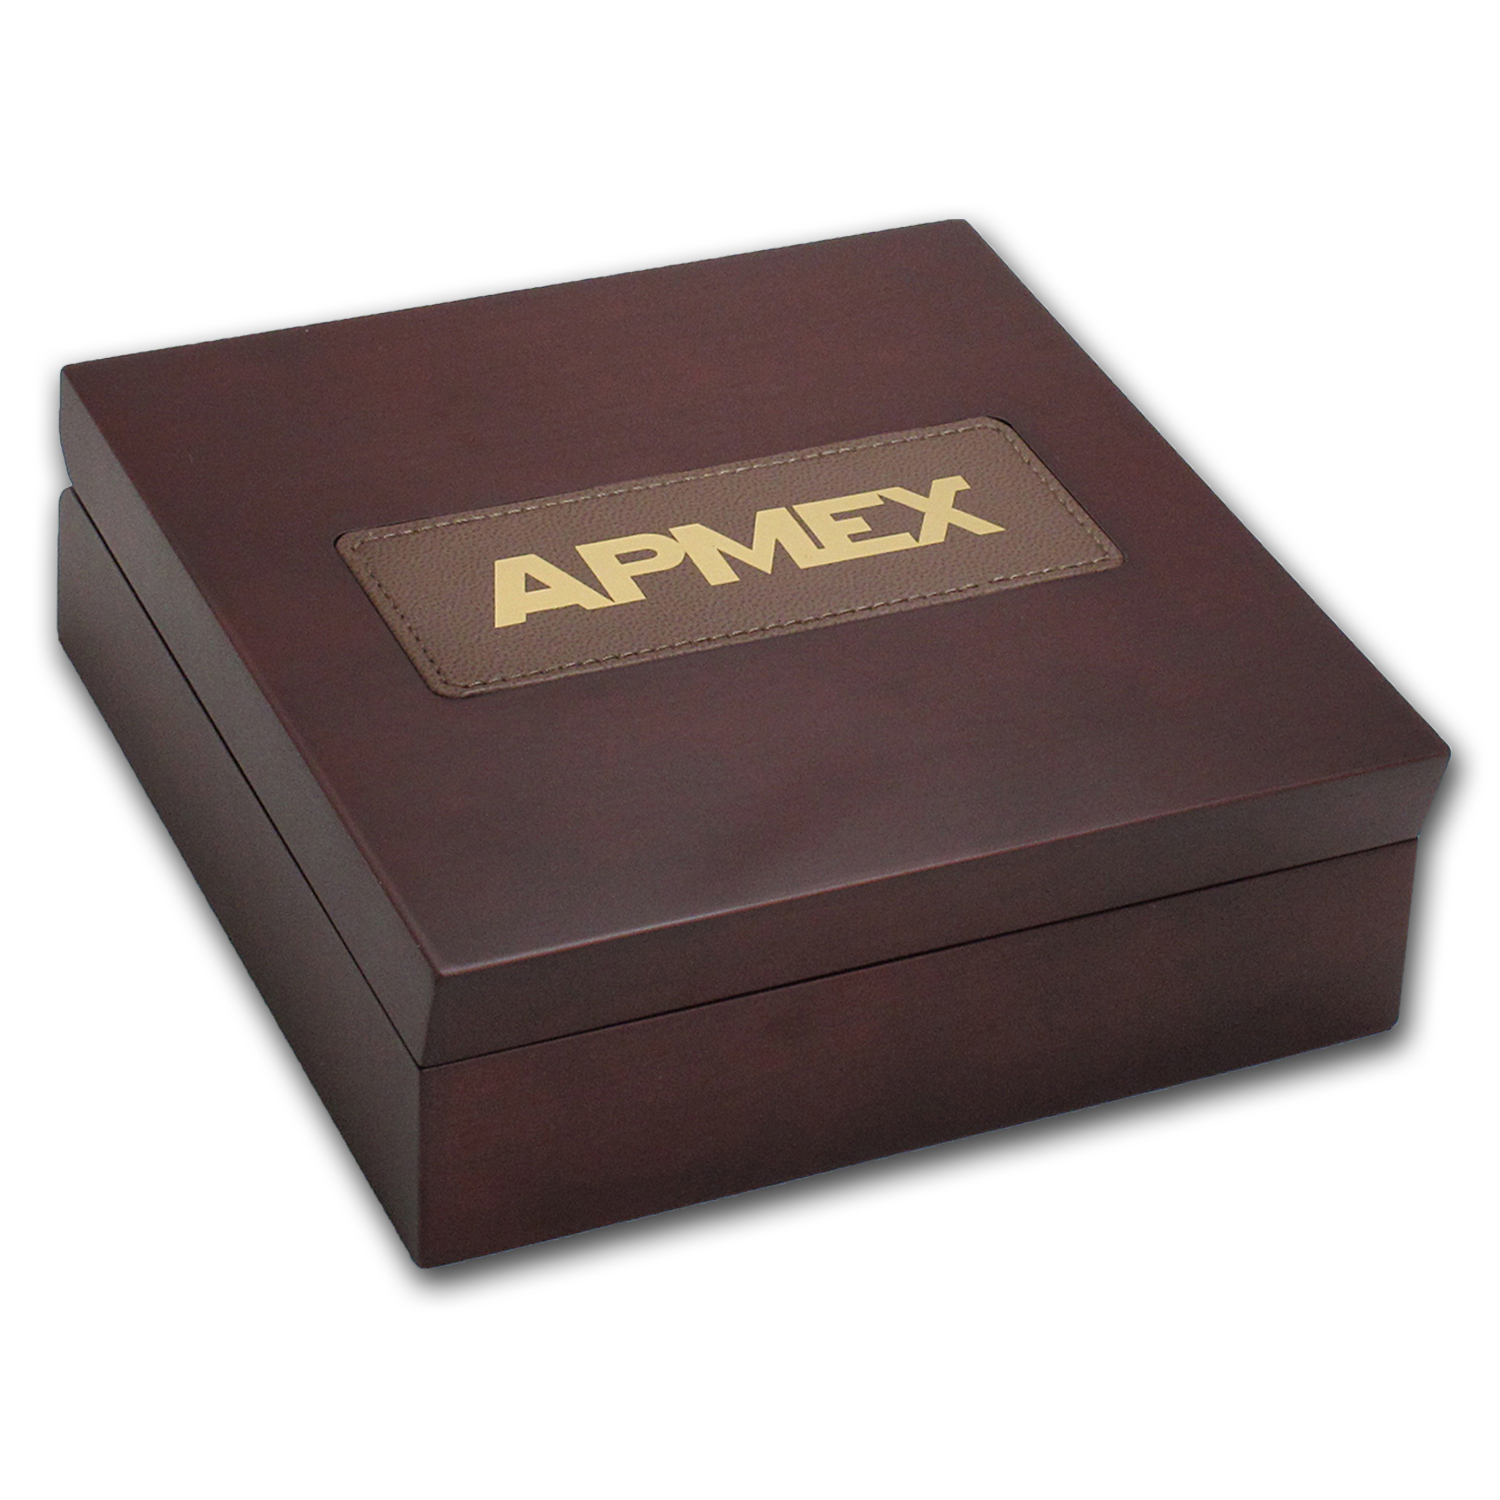 APMEX Wood Gift Box - 10 oz PAMP Suisse Silver Bar (w/Assay)